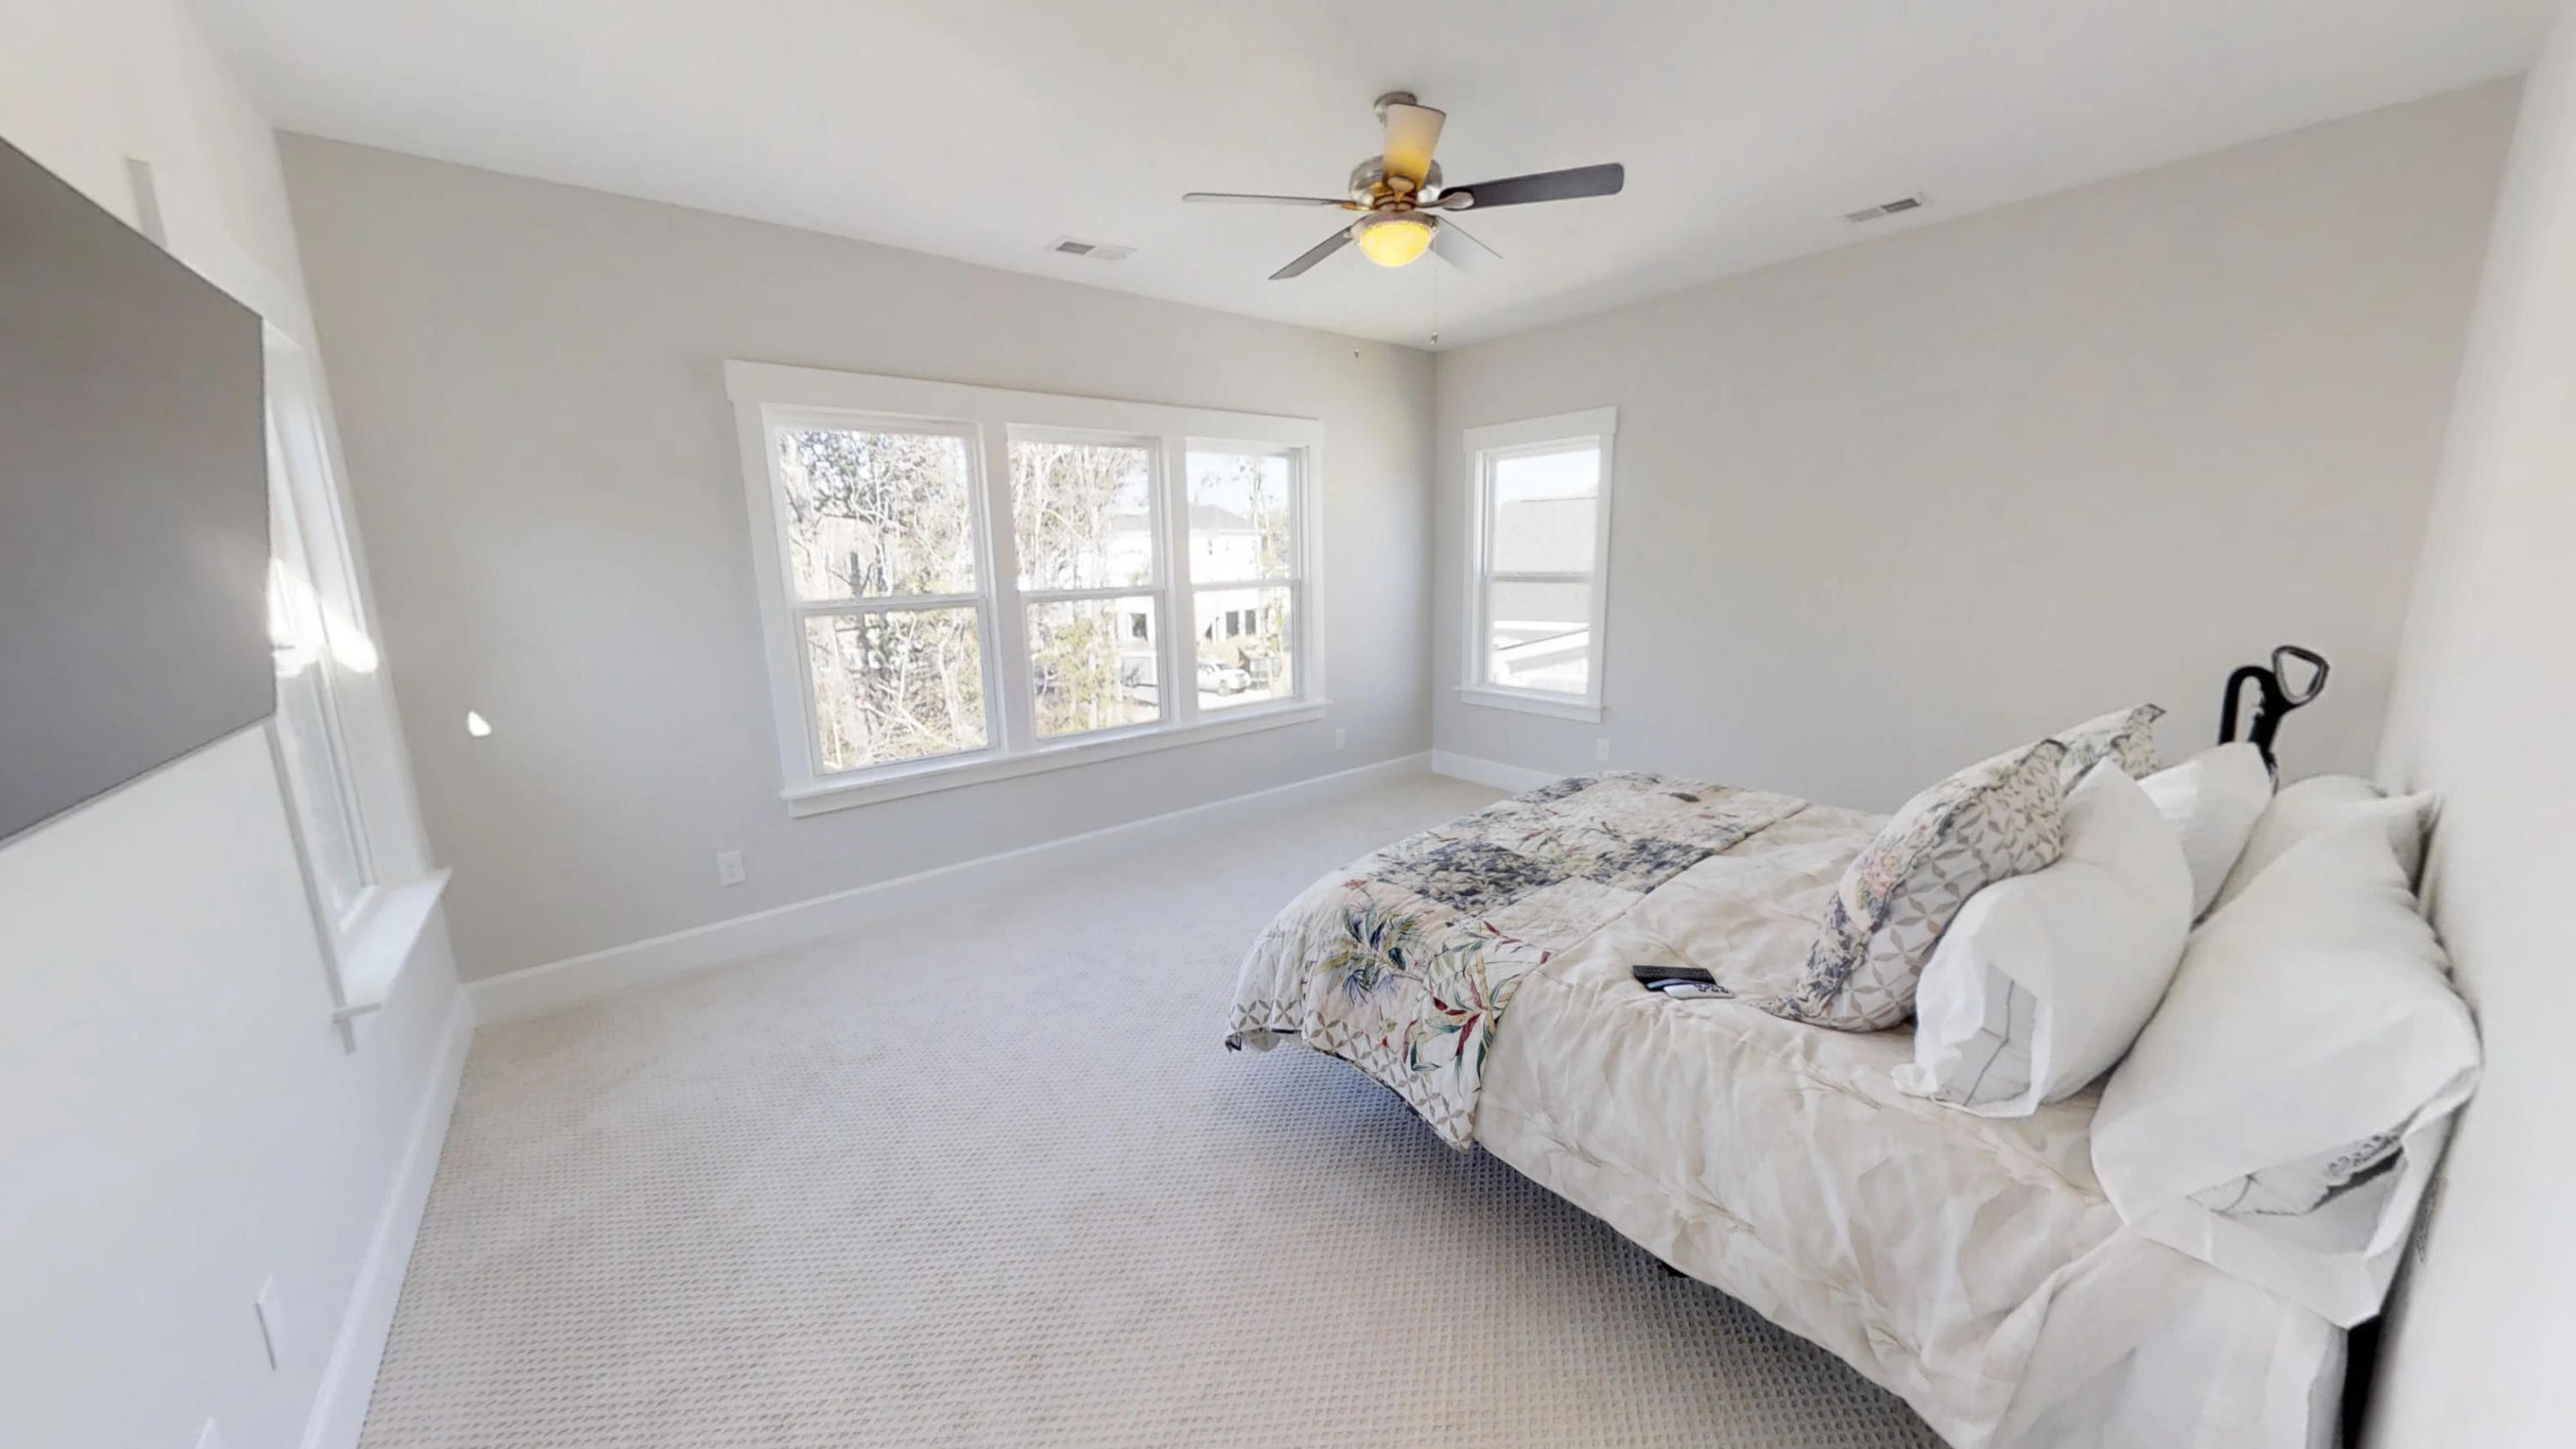 Stratton by the Sound Homes For Sale - 1485 Menhaden Lane, Mount Pleasant, SC - 25